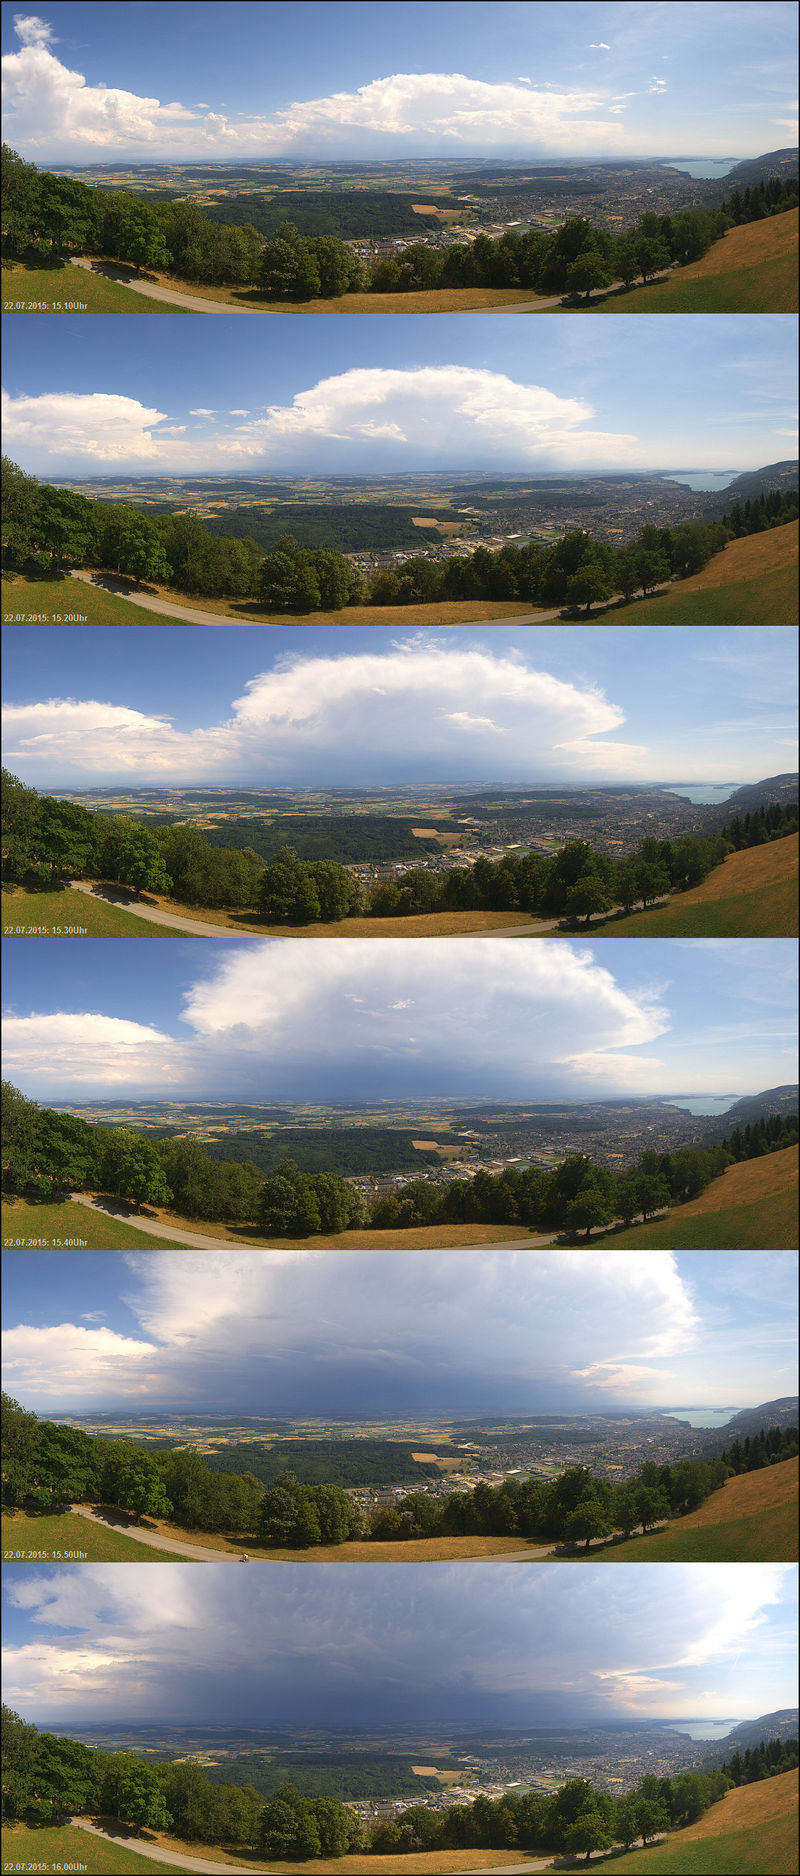 20150722 01 Hail Layer Menzberg LU Napf Panorama.jpg